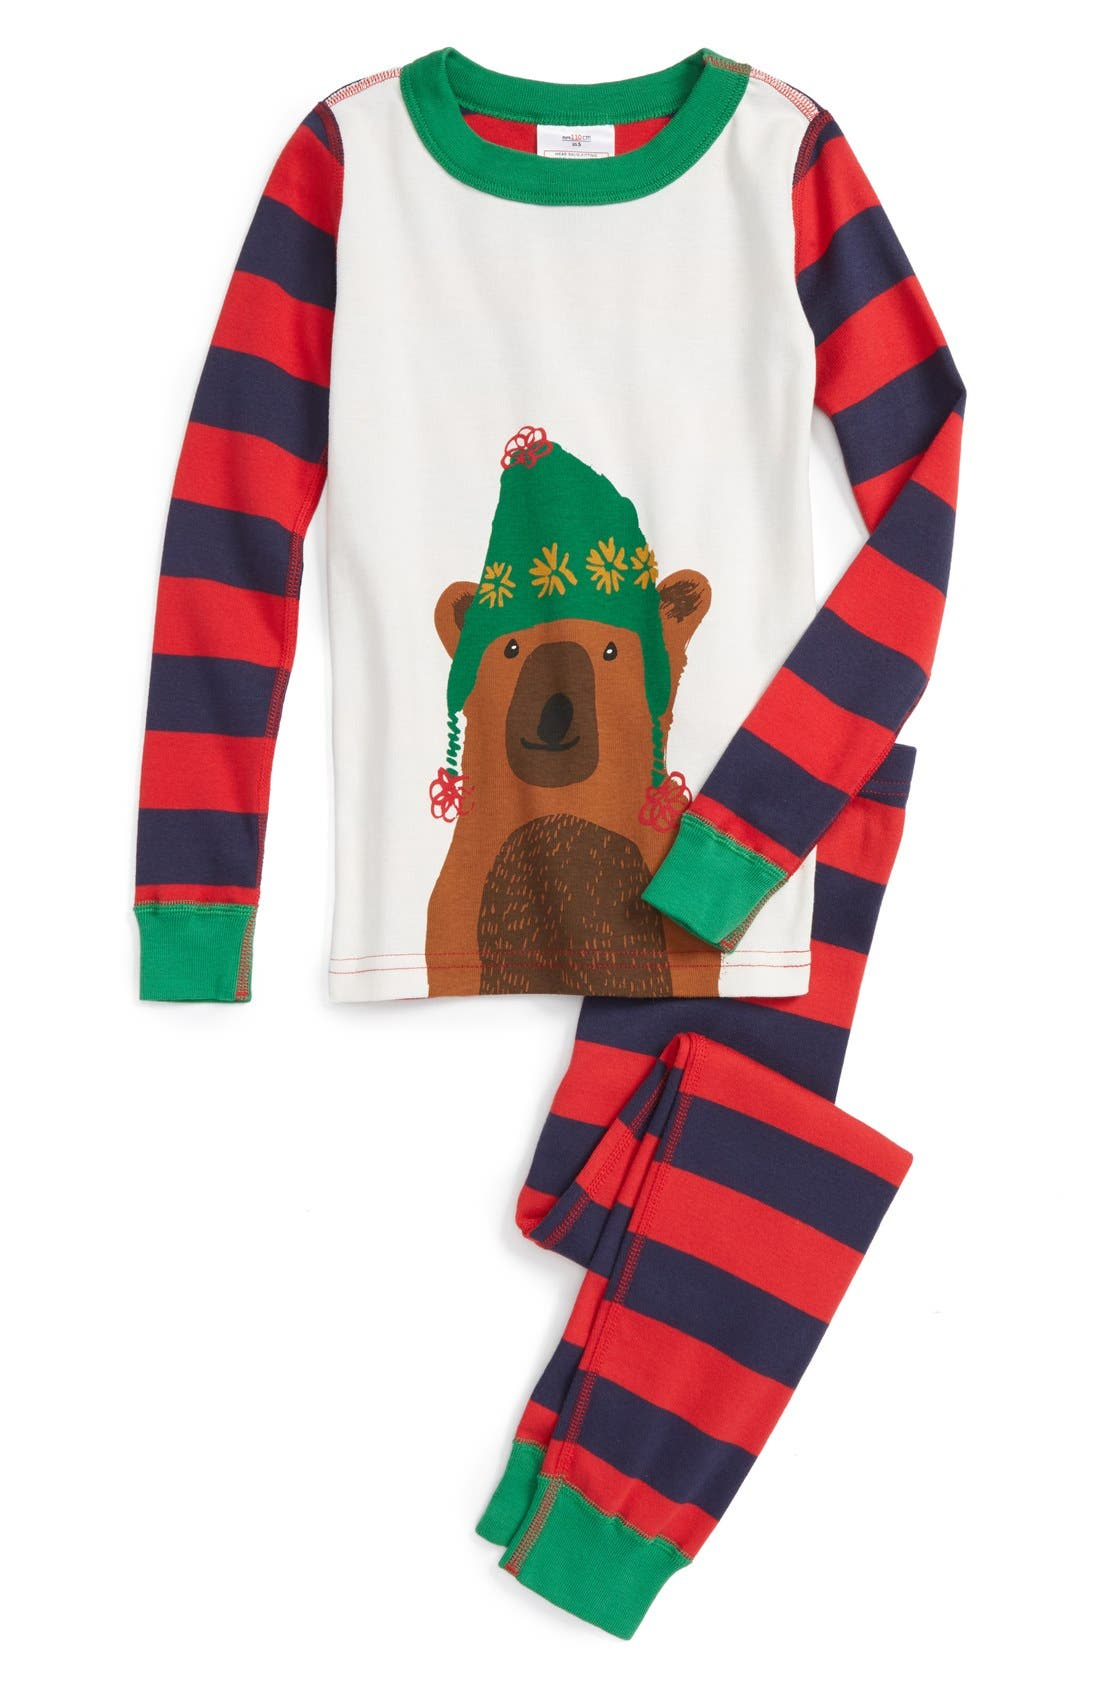 Main Image - Hanna Andersson Holiday Organic Cotton Fitted Two-Piece Pajamas (Toddler, Little Kid & Big Kid)